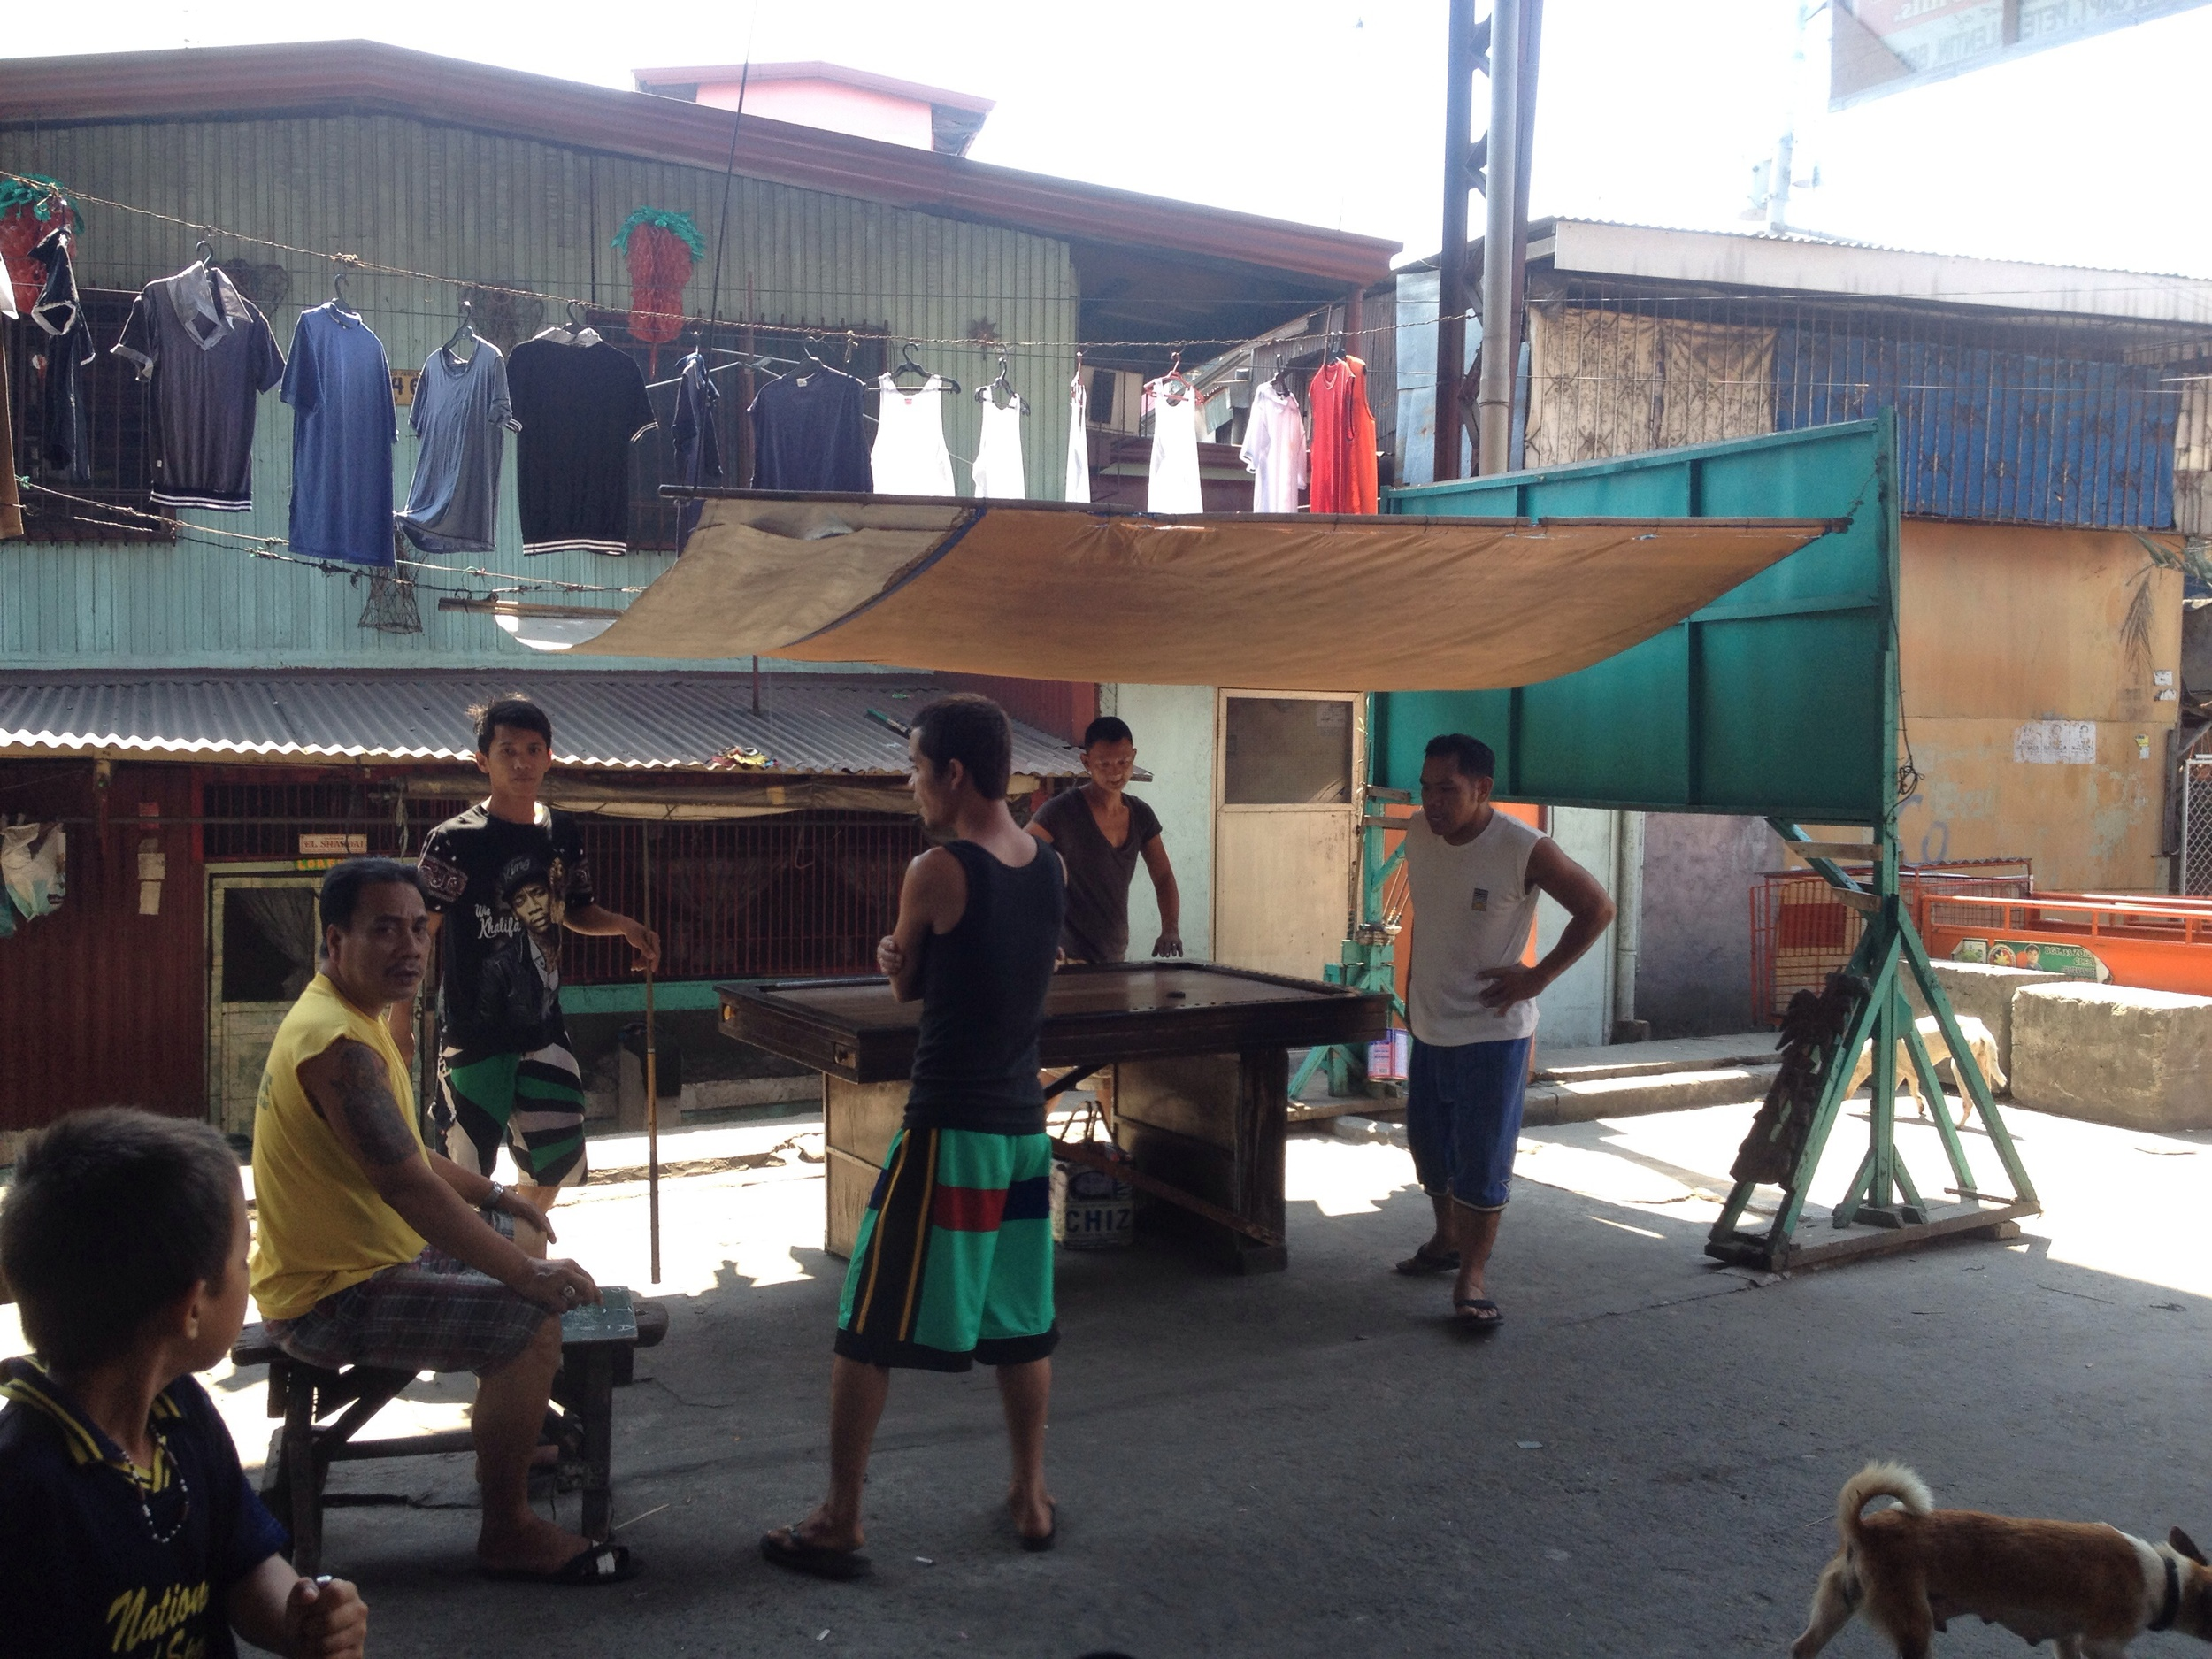 Street space is converted to a pool hall when shaded.